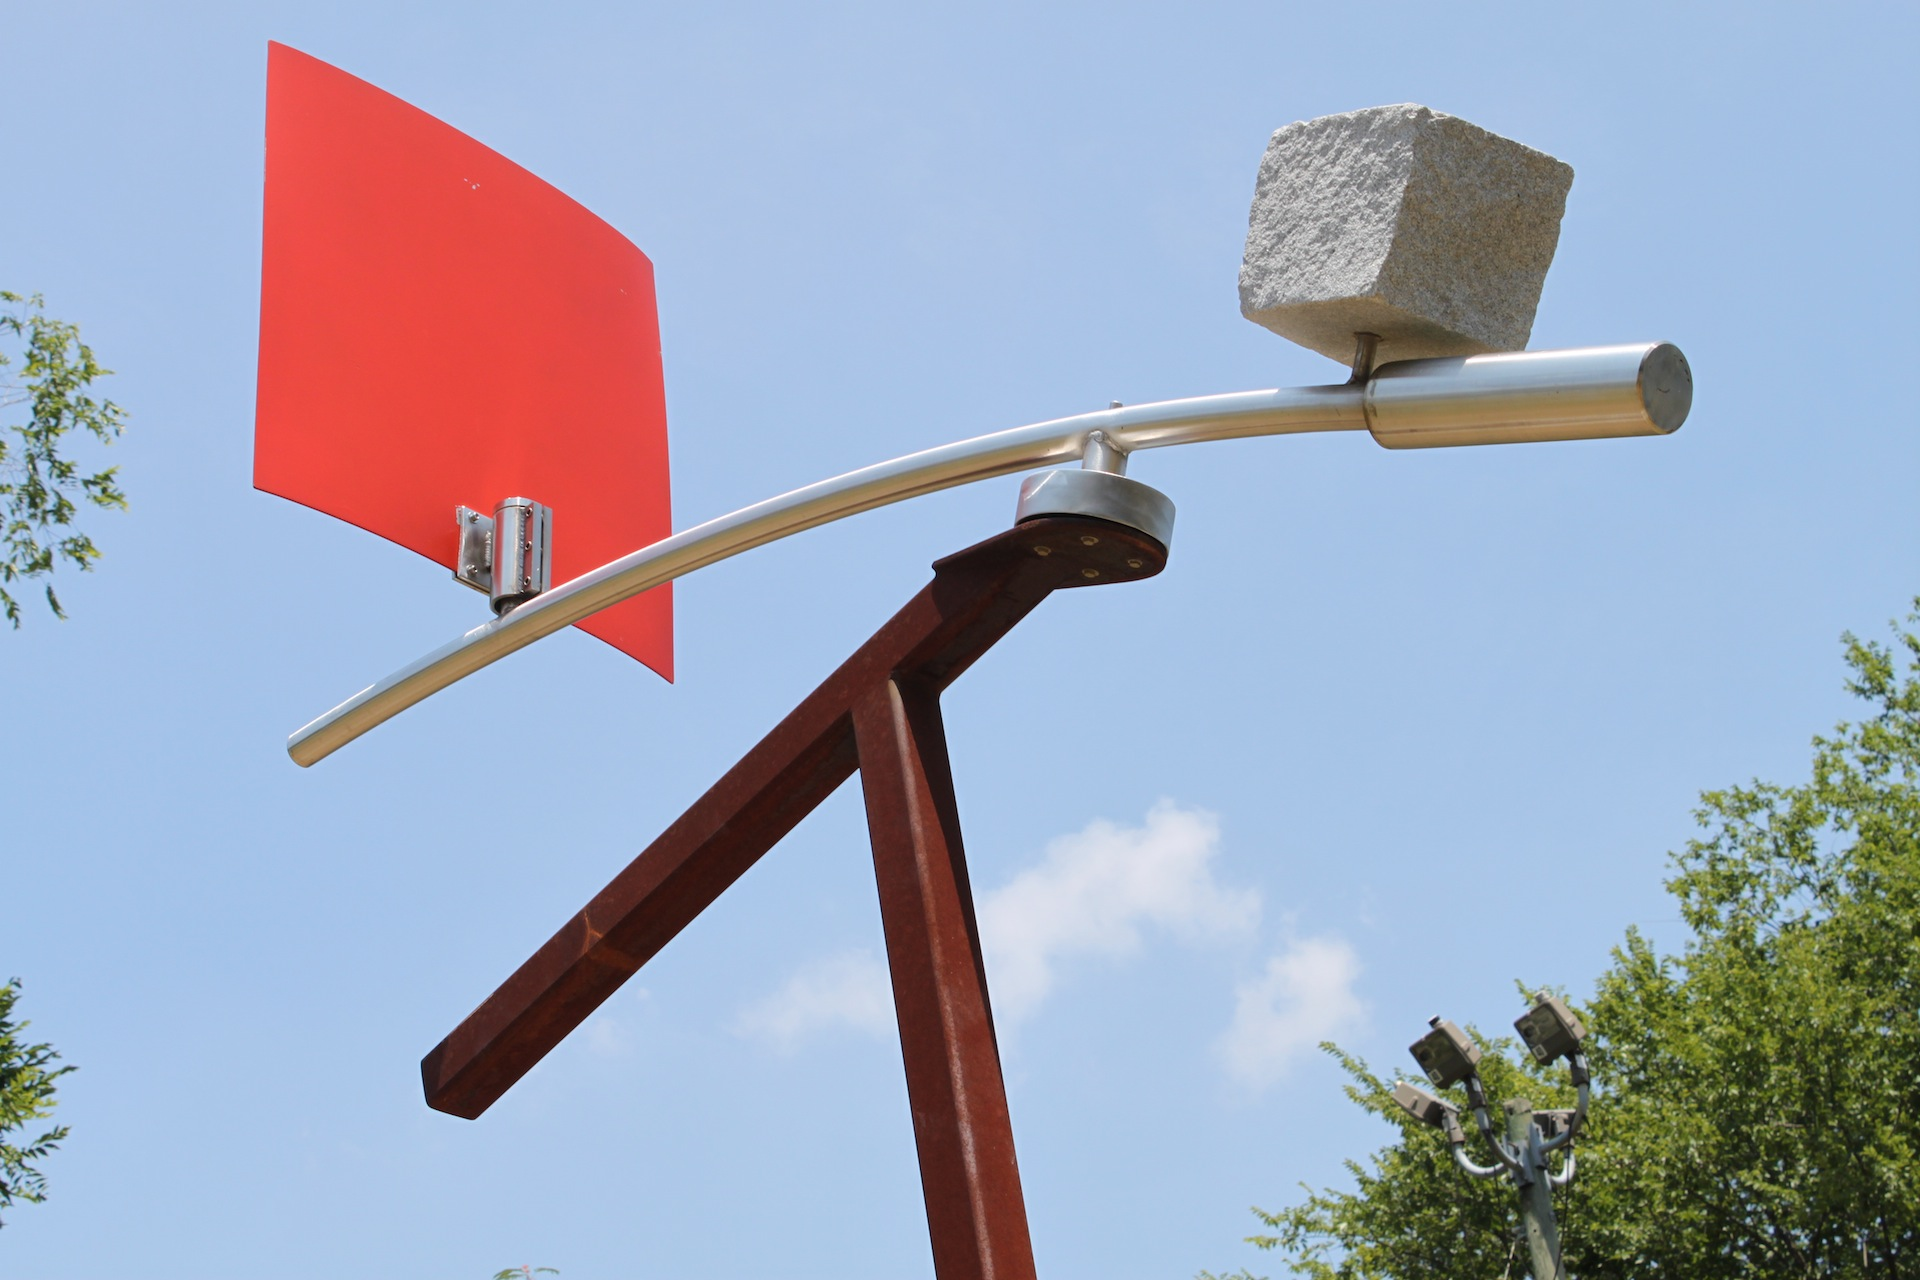 Geometry of Sol soon to be installed in Oakhurst/Decatur, GA for The Decatur Artway Phase II.